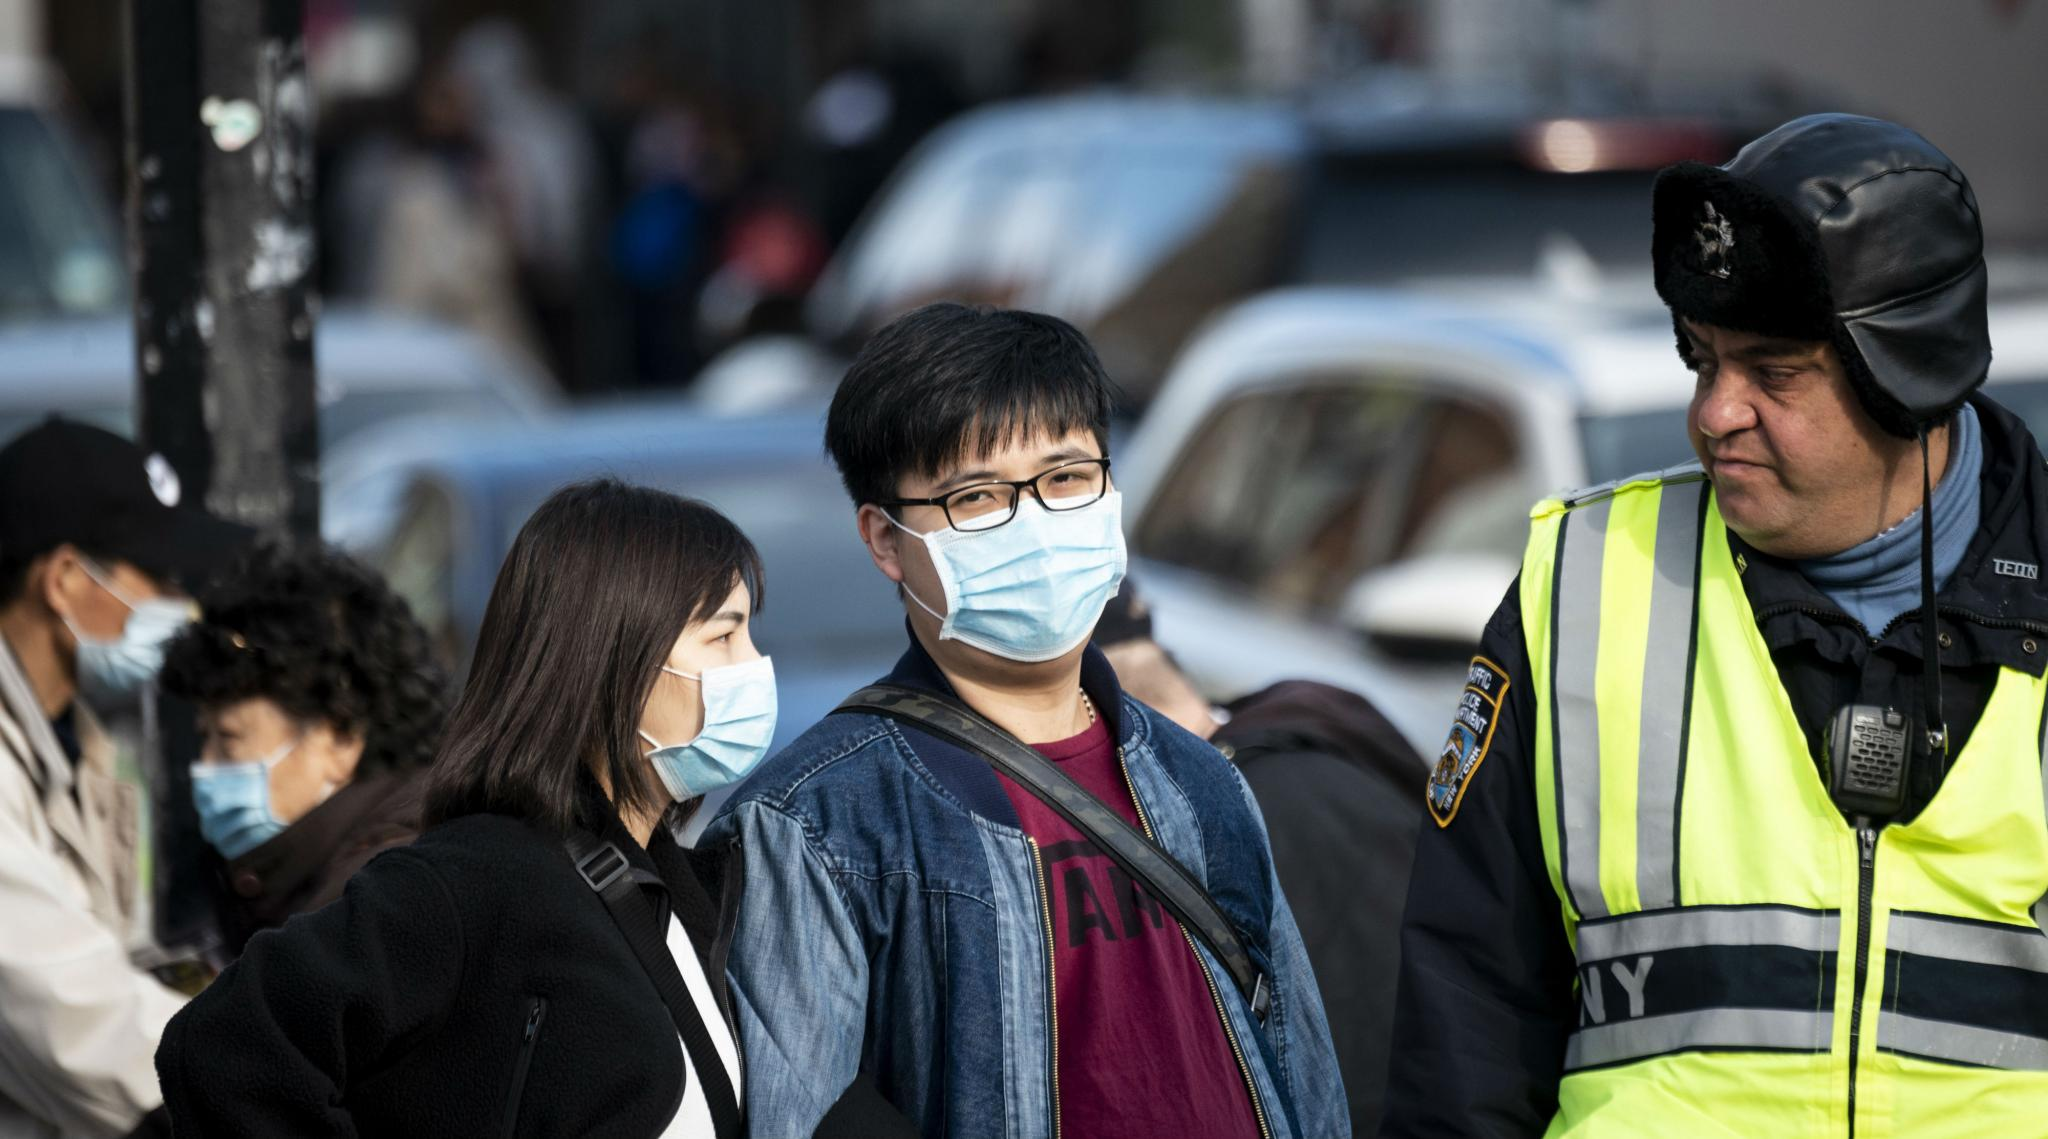 Epidemic spreads in Iran as South Korea vows relief fund